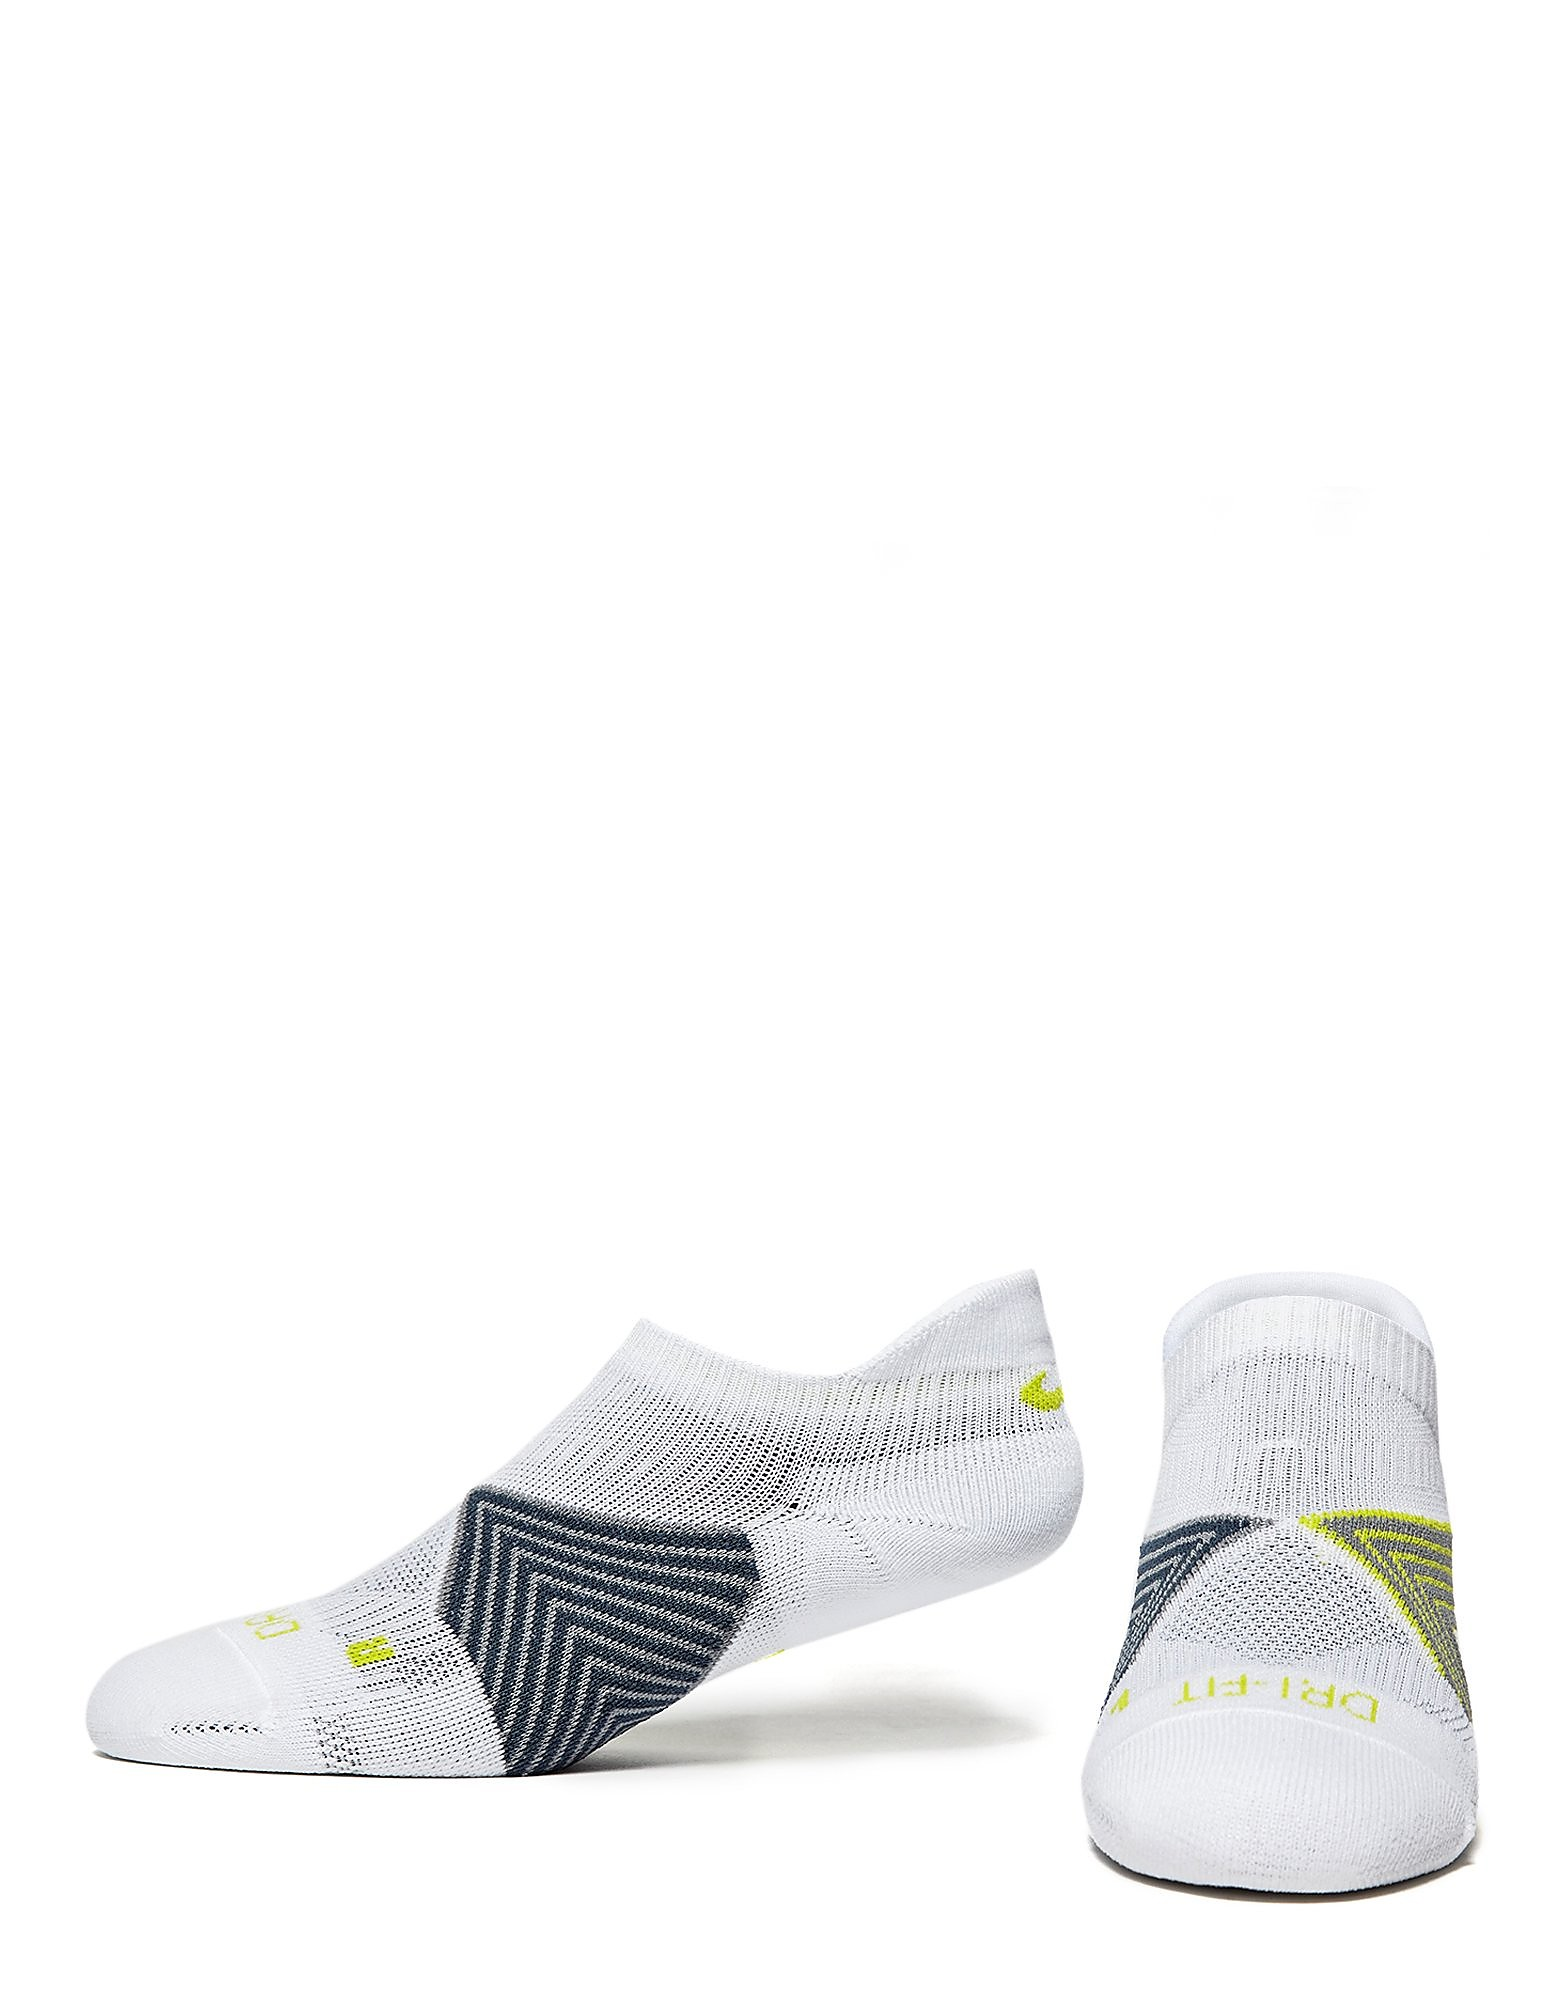 Nike Elite Cushioned No Show Sock